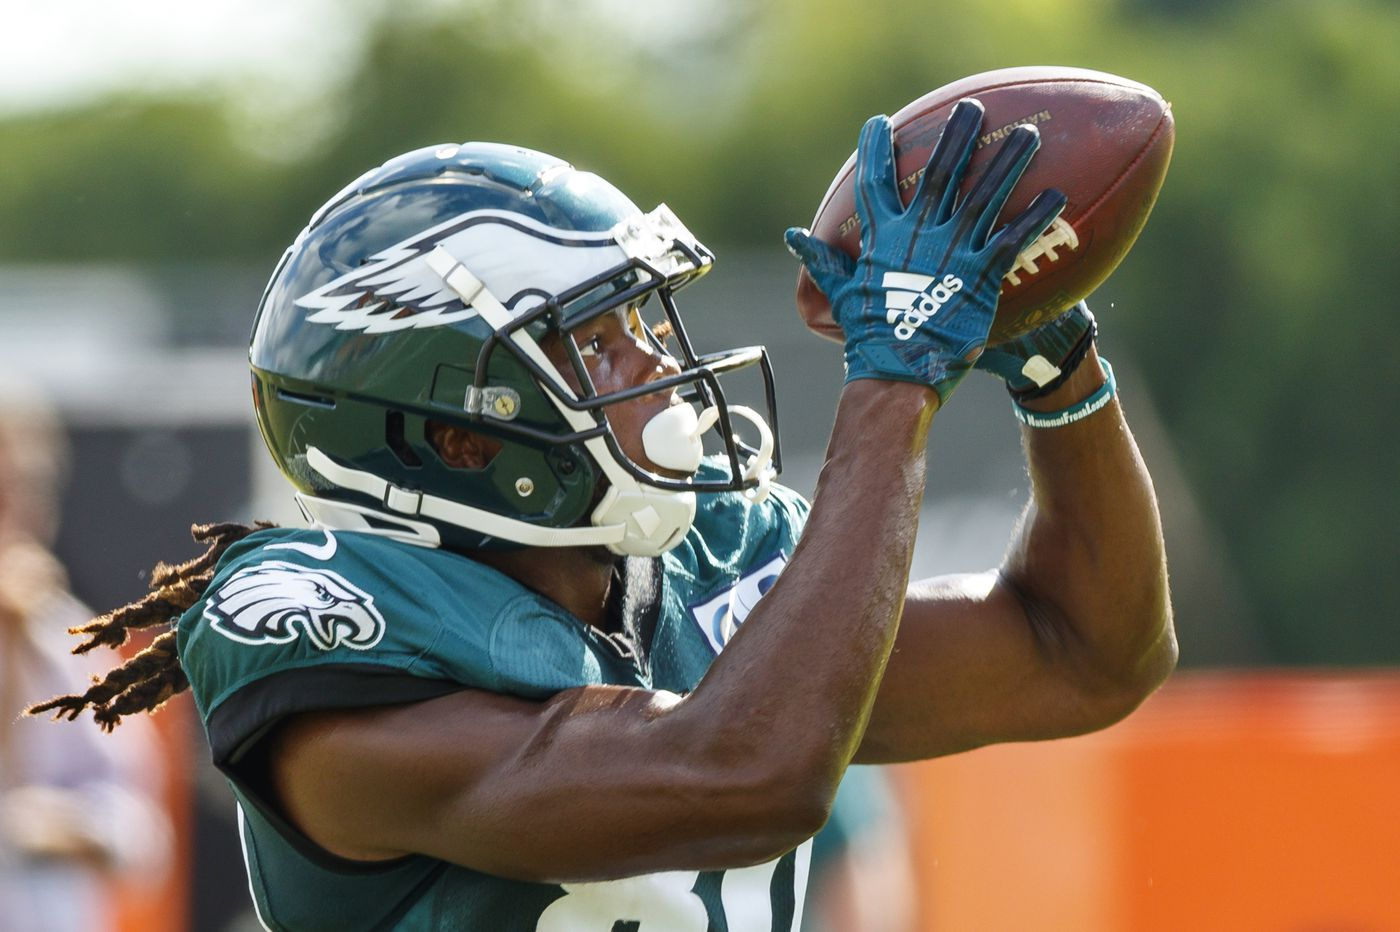 Eagles place tight end Richard Rodgers on injured reserve, sign wide receiver Markus Wheaton